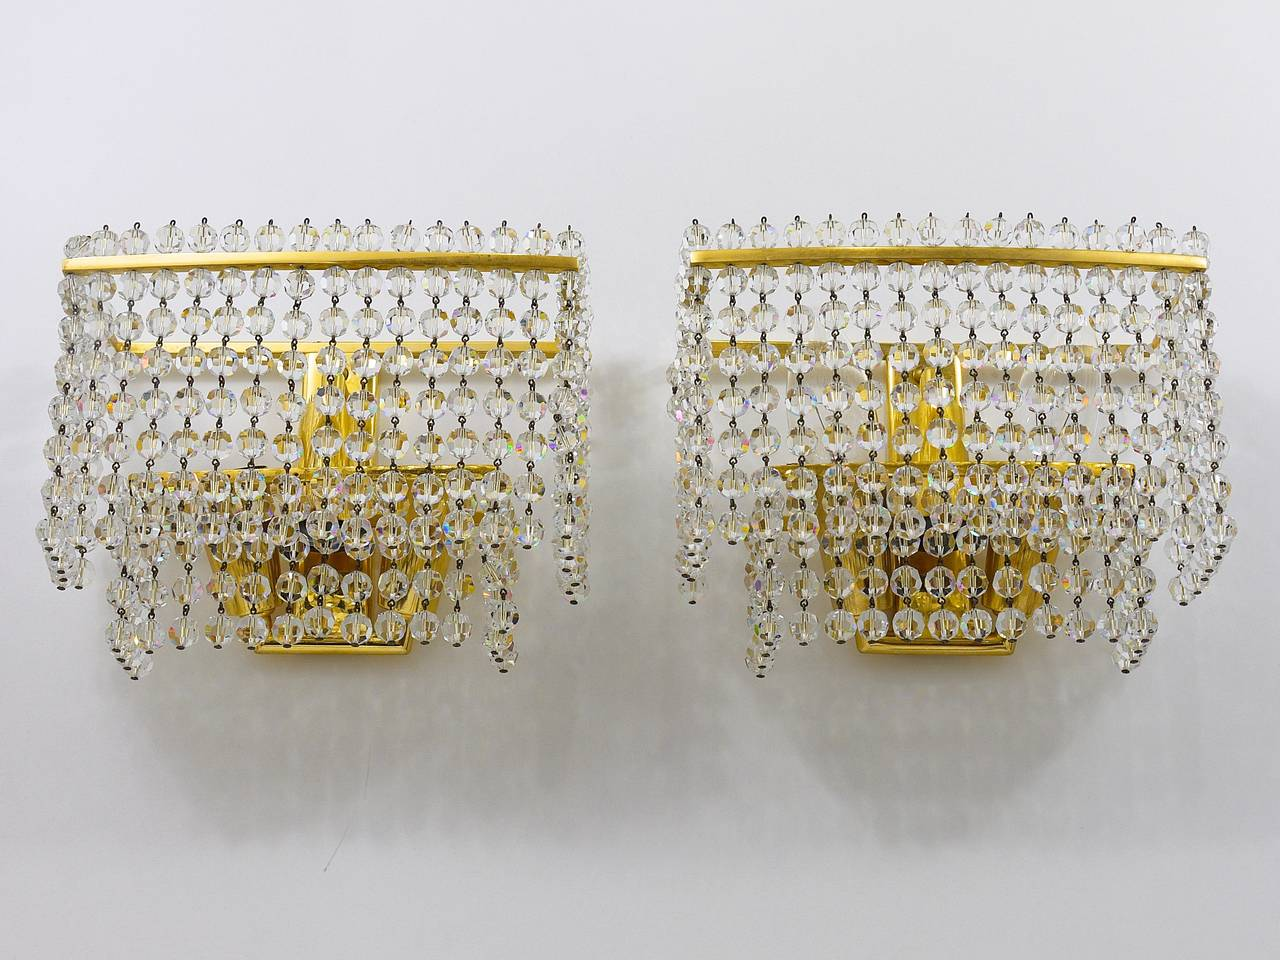 A pair of gold-plated Mid-Century brass sconces. Designed and executed in the 1970s by J. L. Jobmeyr. Very beautiful lights, two layers of linked, highest quality leaded, faceted crystal pearls hanging on a gilded brass frame. Each sconce has three